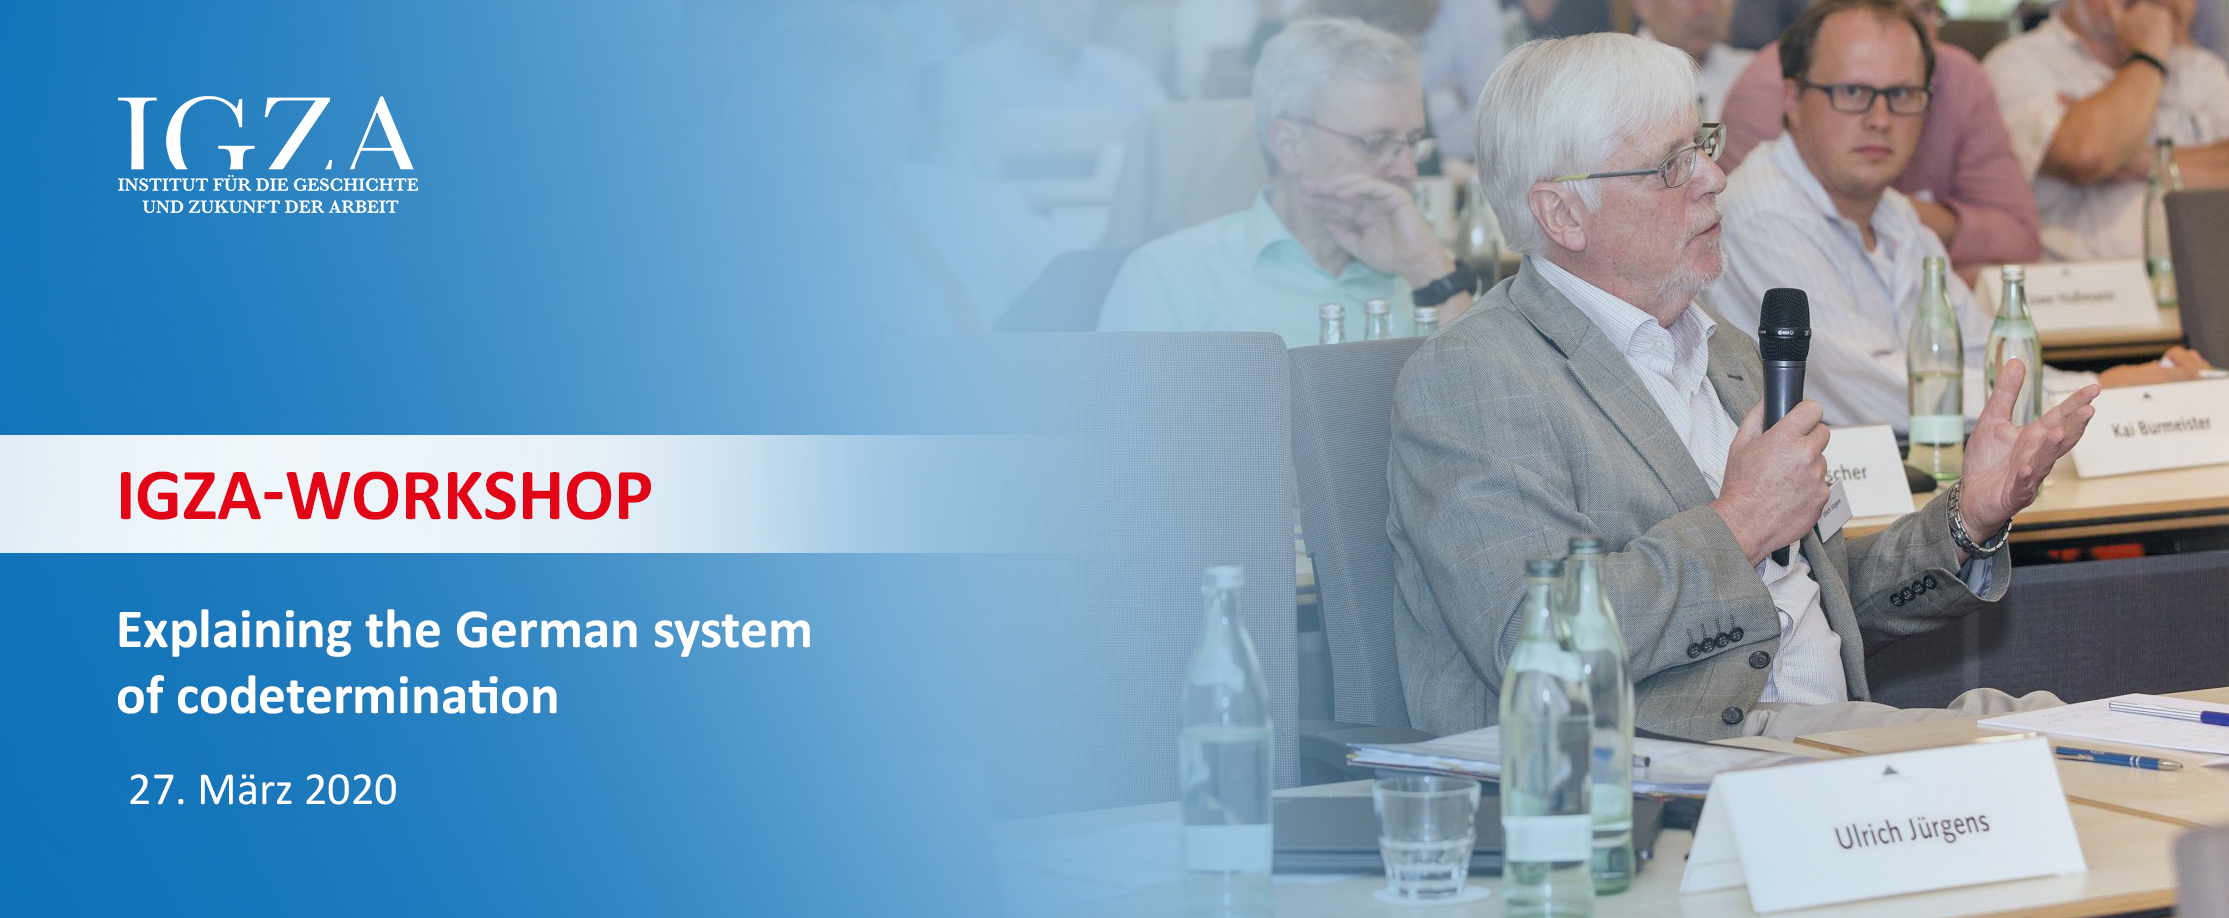 Internationaler IGZA-Workshop zum deutschen Mitbestimmungssystem